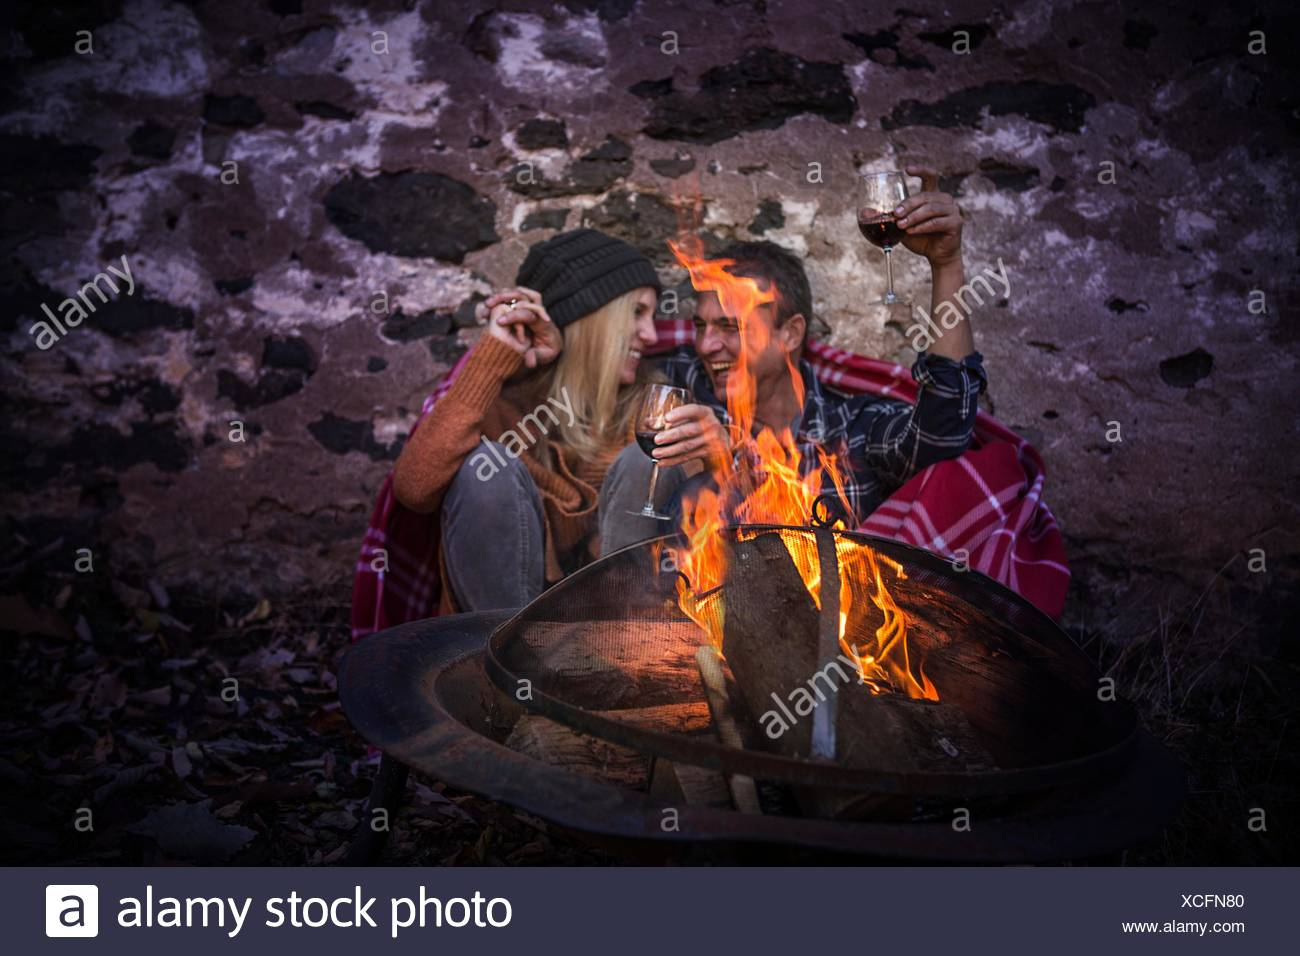 Romantic mature couple wrapped in blanket in front of campfire at night - Stock Image